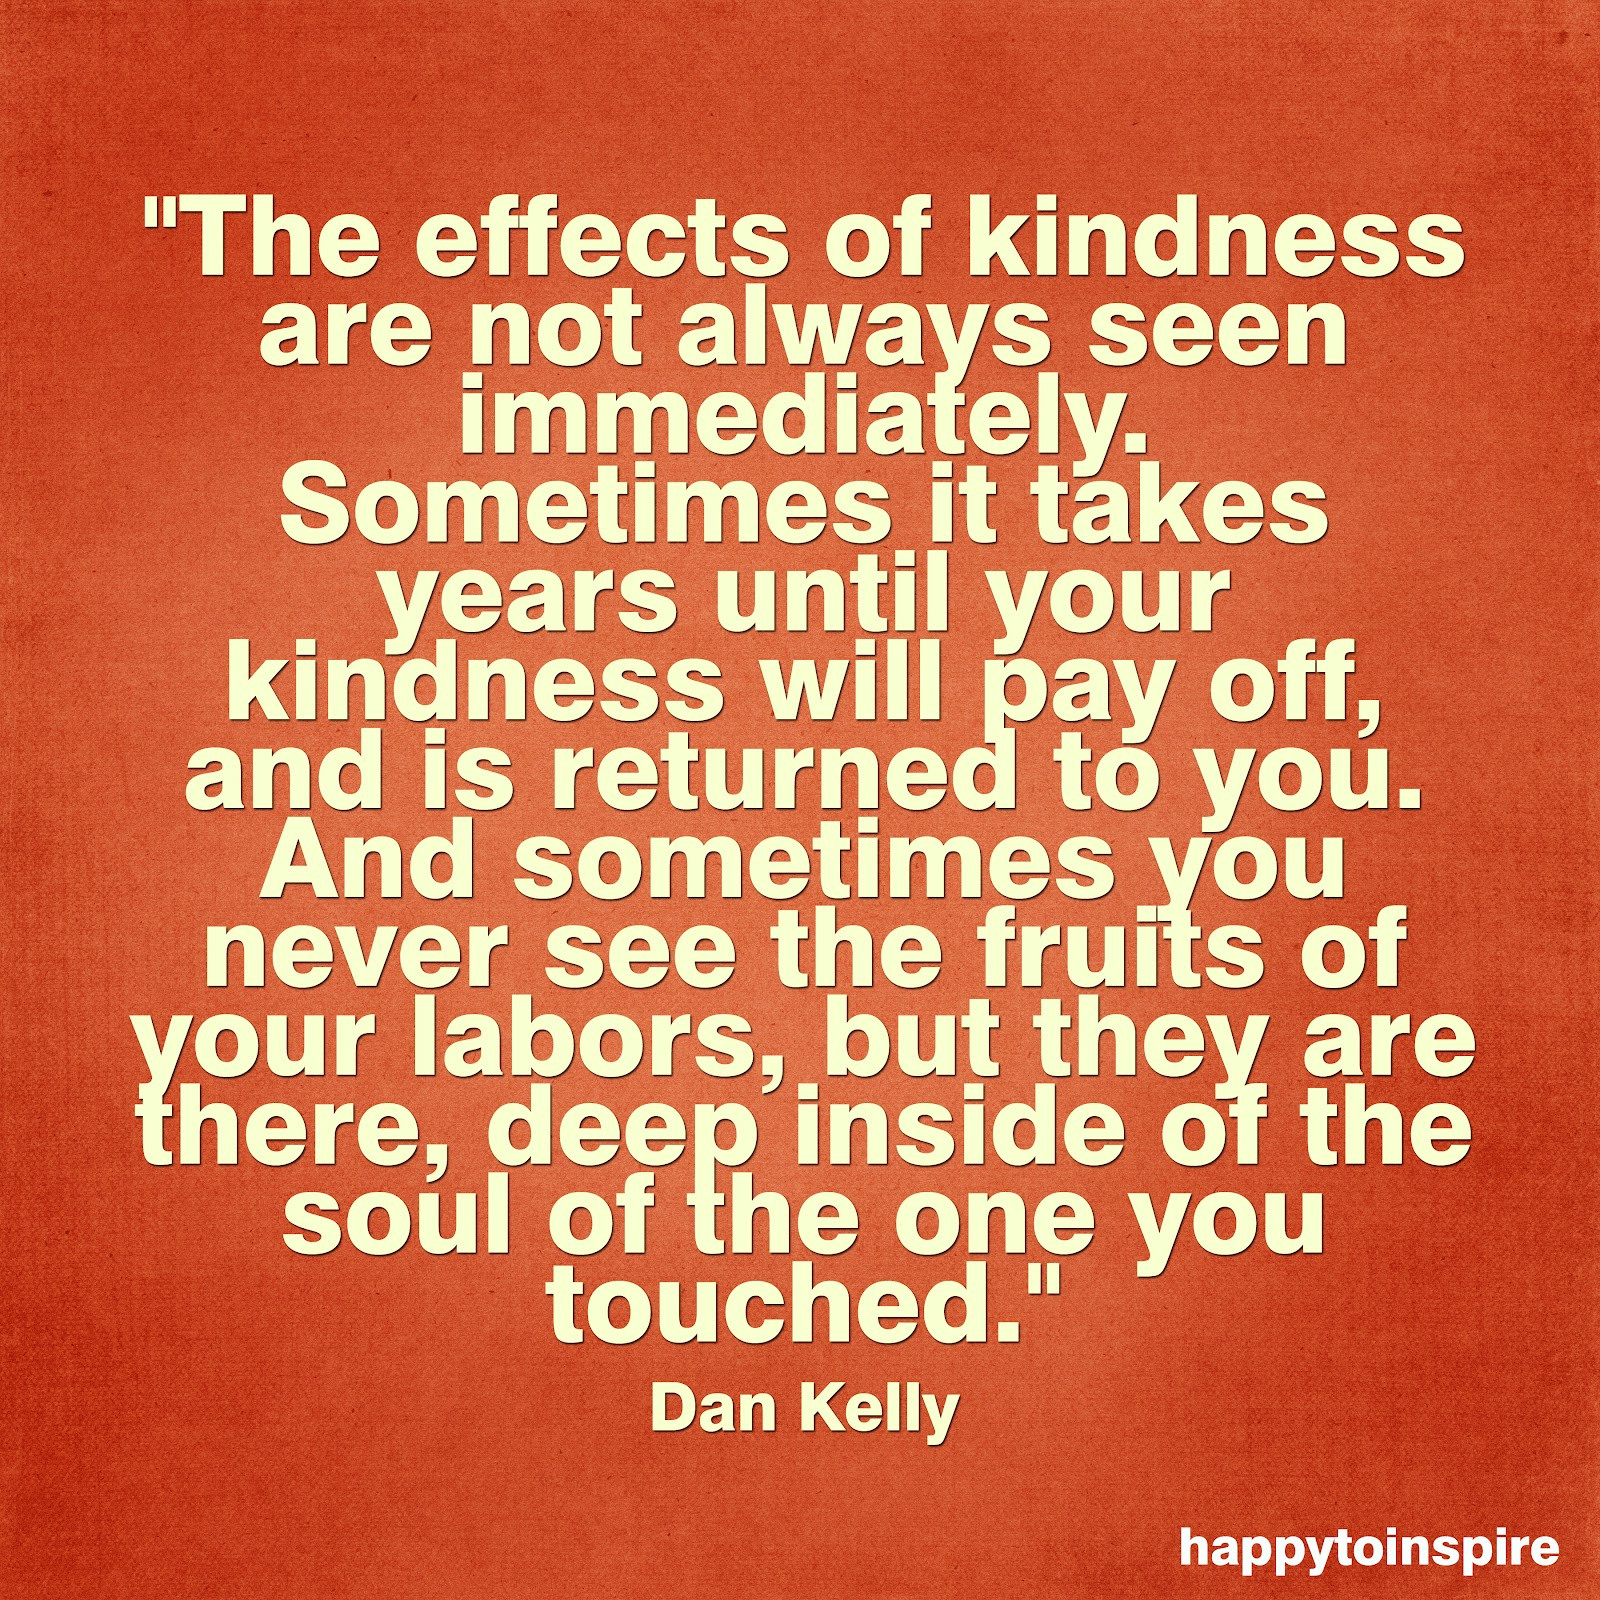 Quotes Kindness  Happy To Inspire June 2012